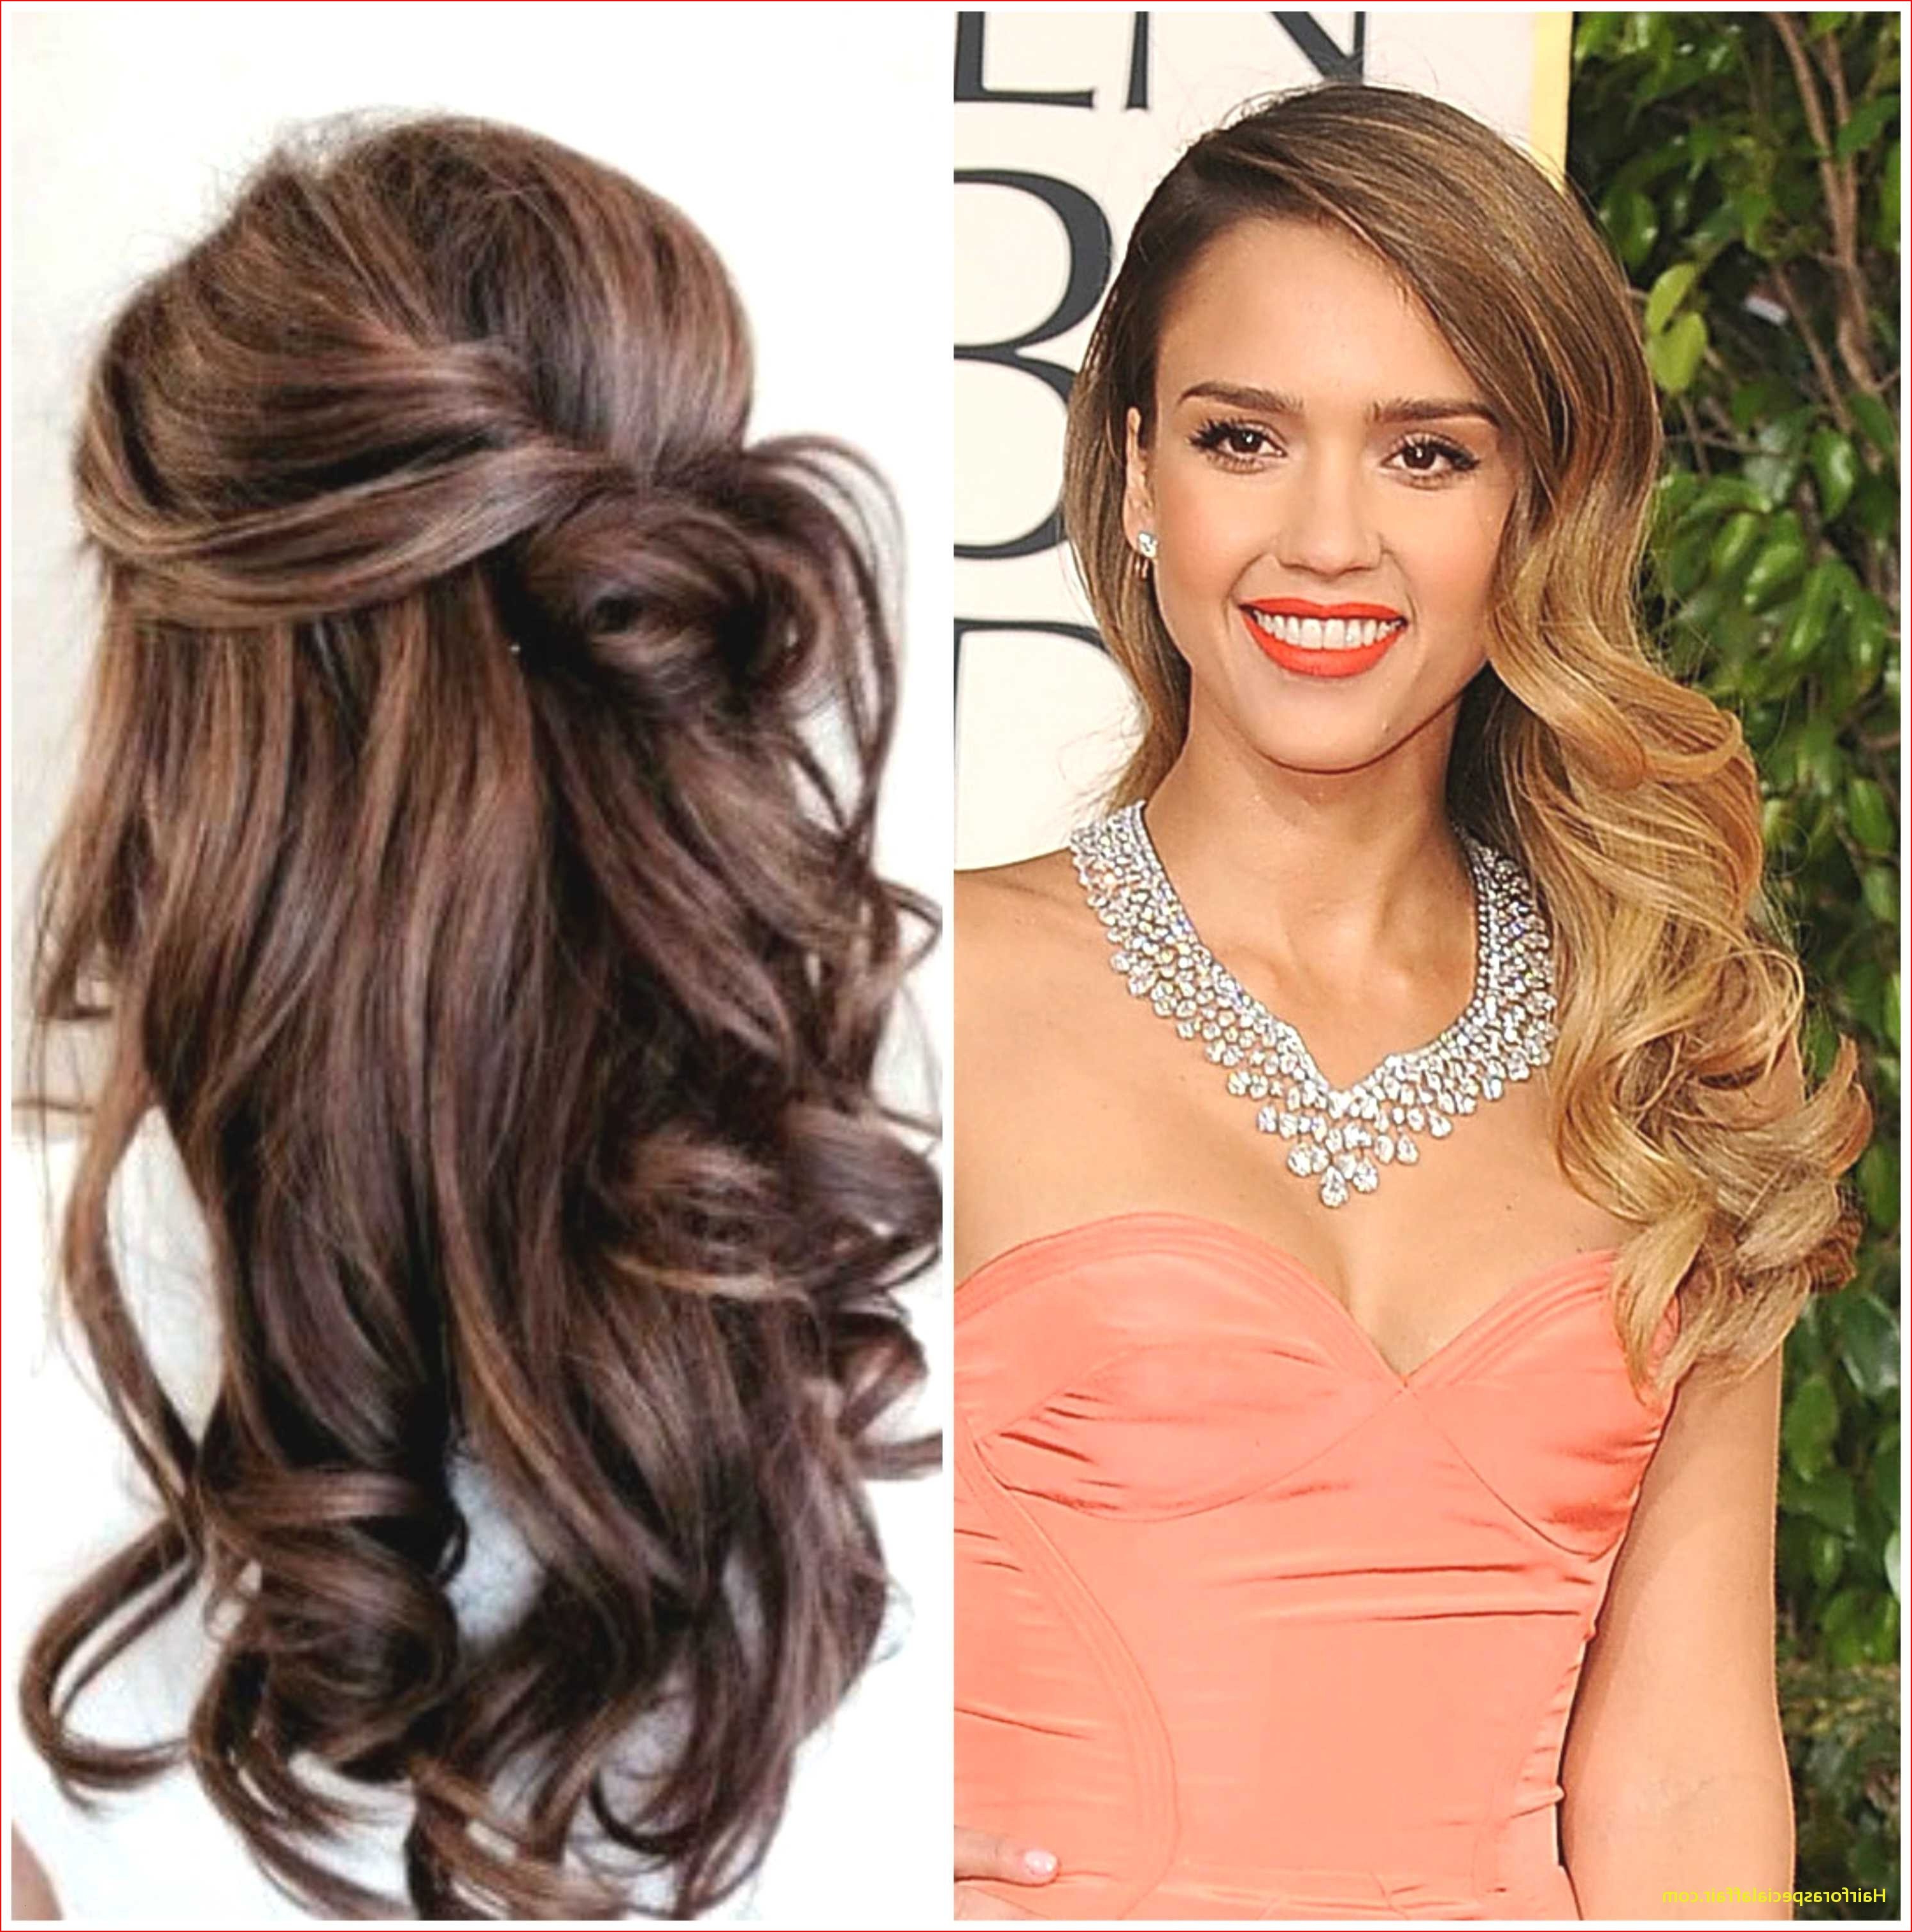 Hairstyles : Long Curly Mohawk Hairstyle Scenic Mohawk Wigs With Famous Curly Red Mohawk Hairstyles (View 15 of 20)